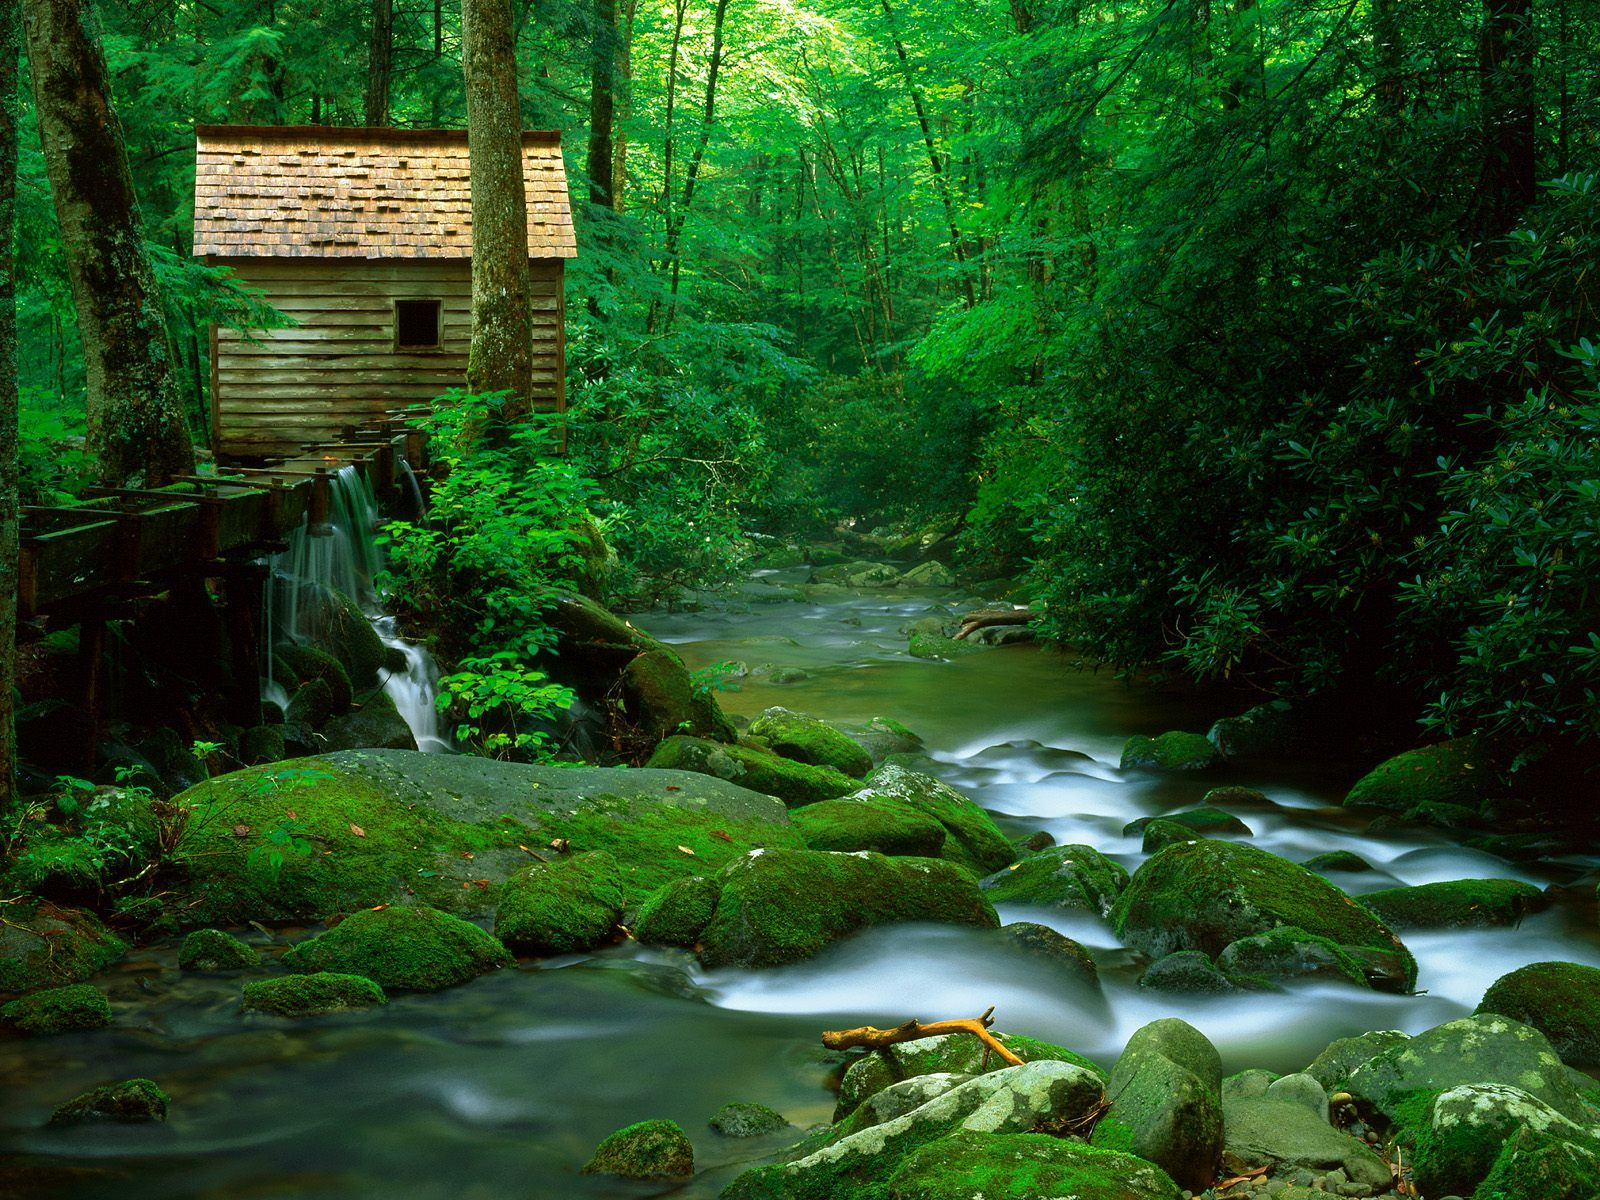 Reagan Mill, Roaring Fork, Great Smoky Mountains National Park, Tennessee US